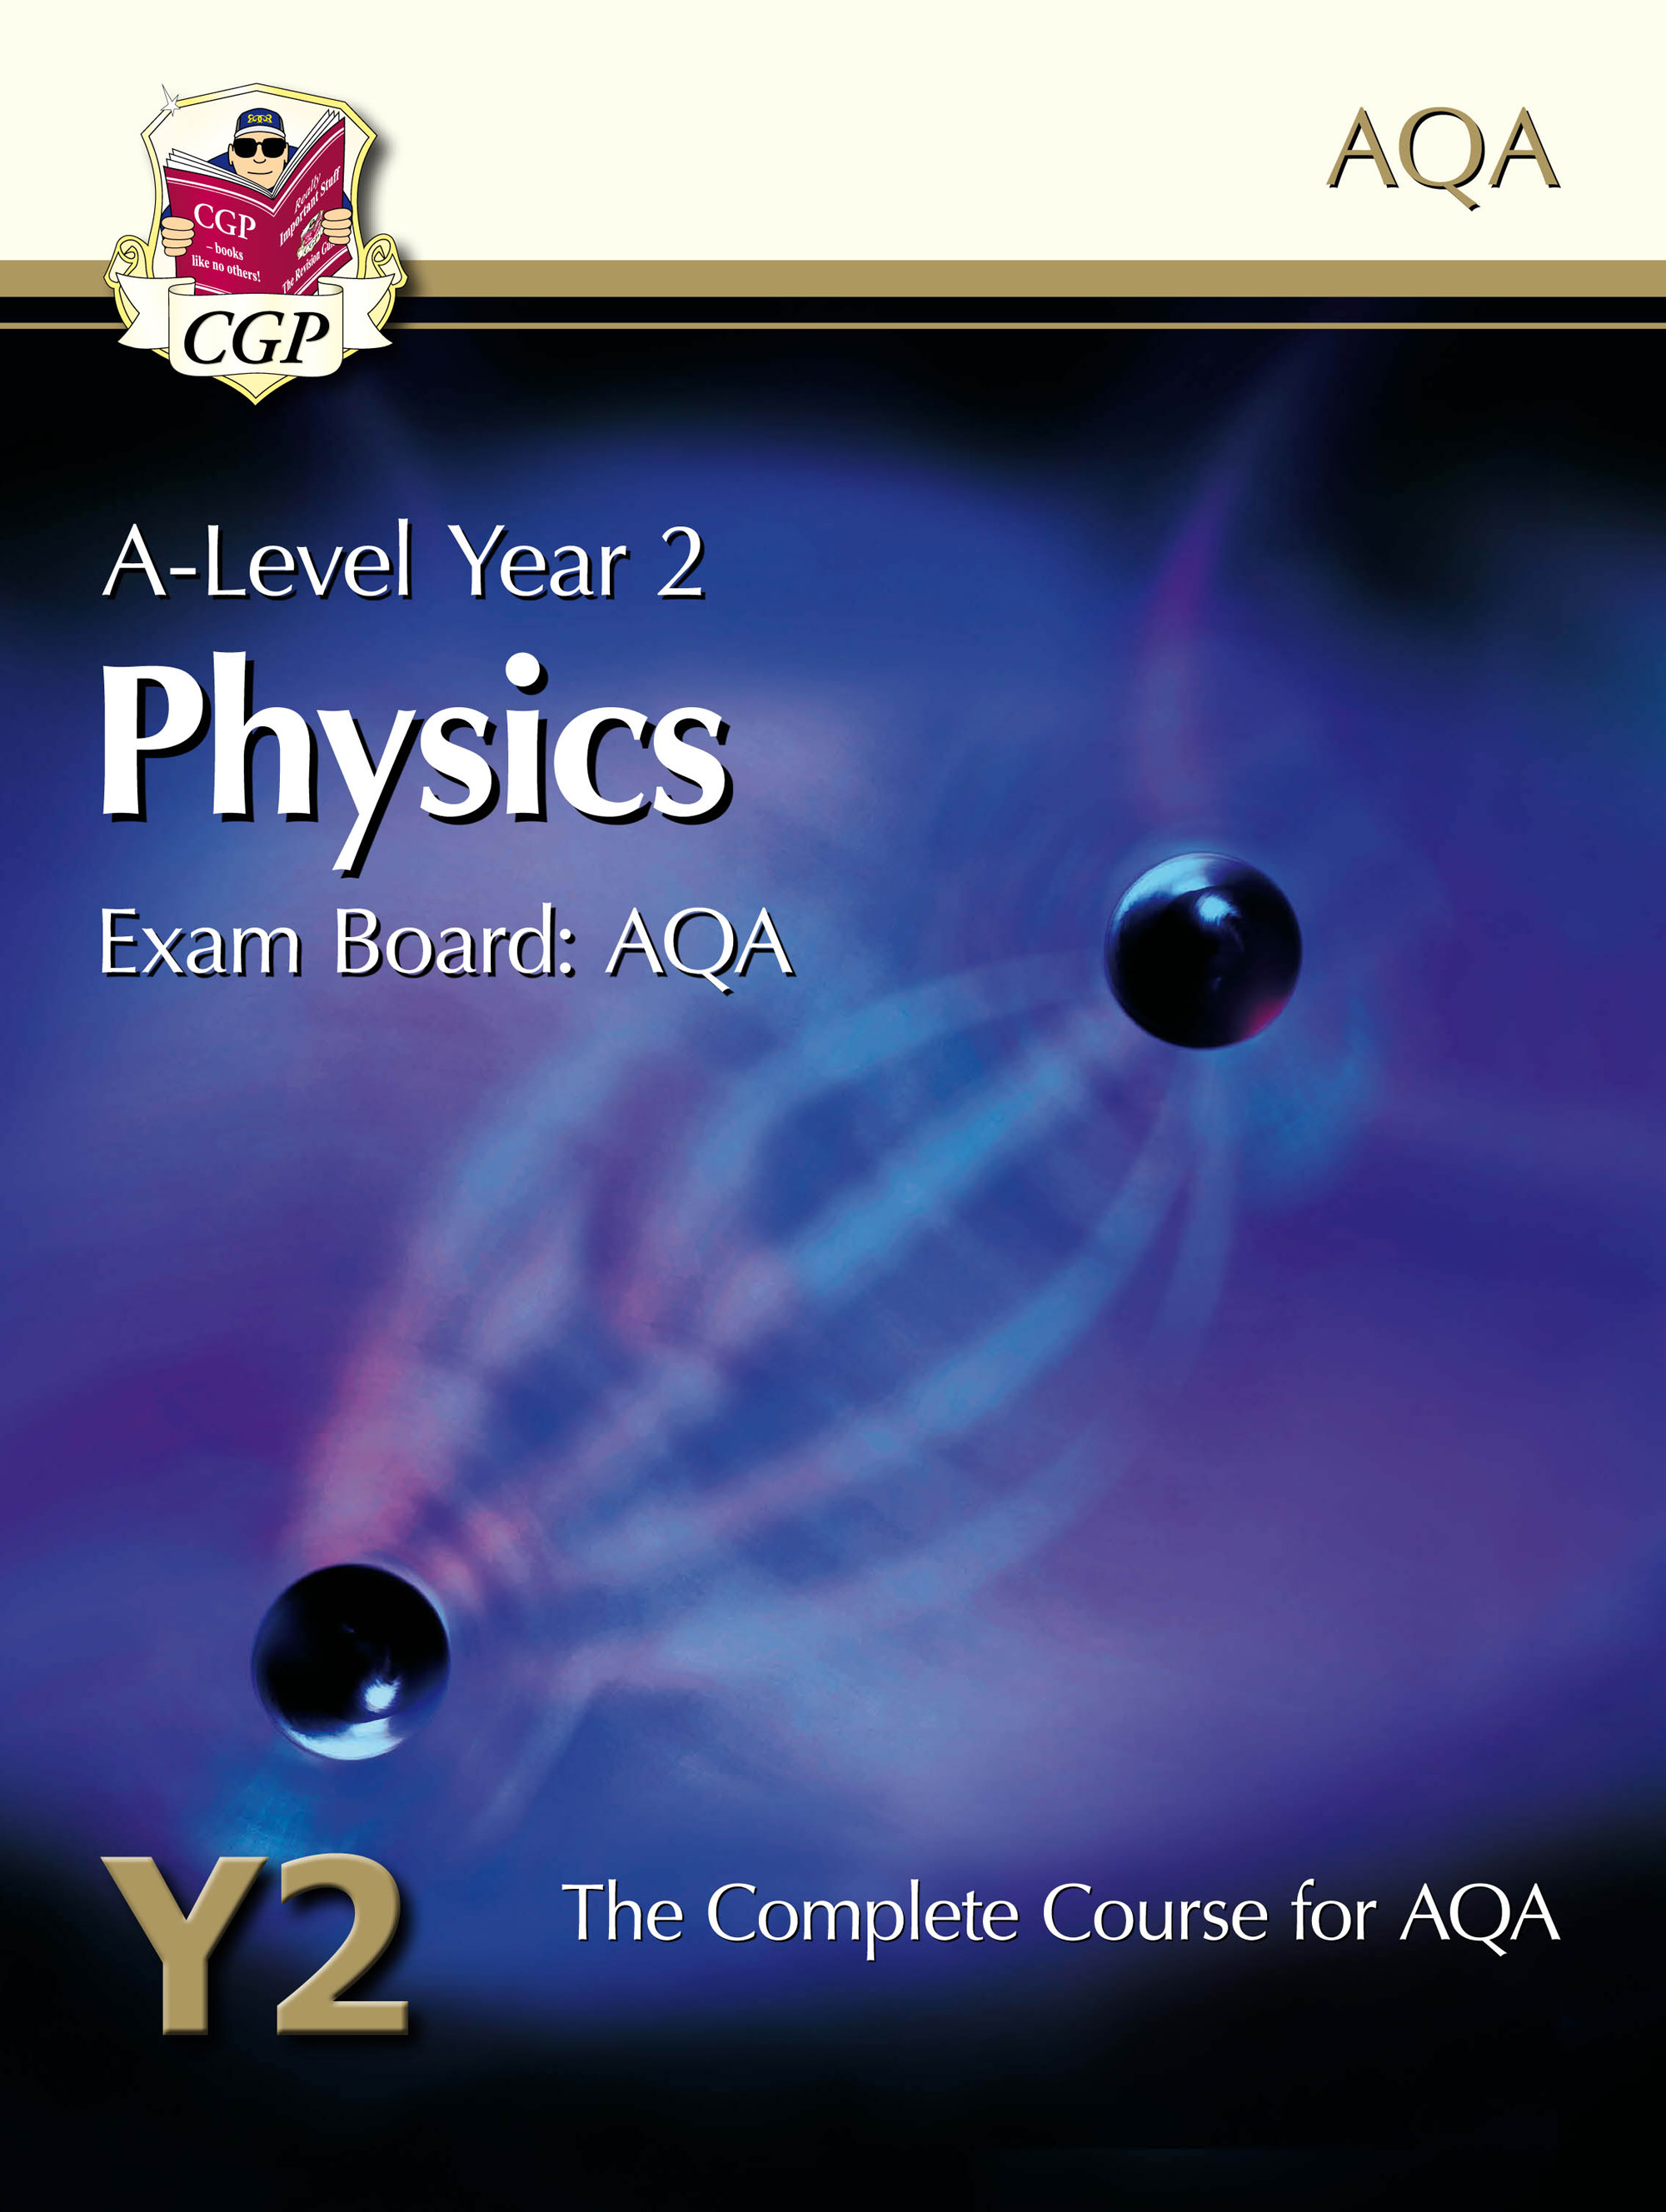 PATB62DK - A-Level Physics for AQA: Year 2 Student Book